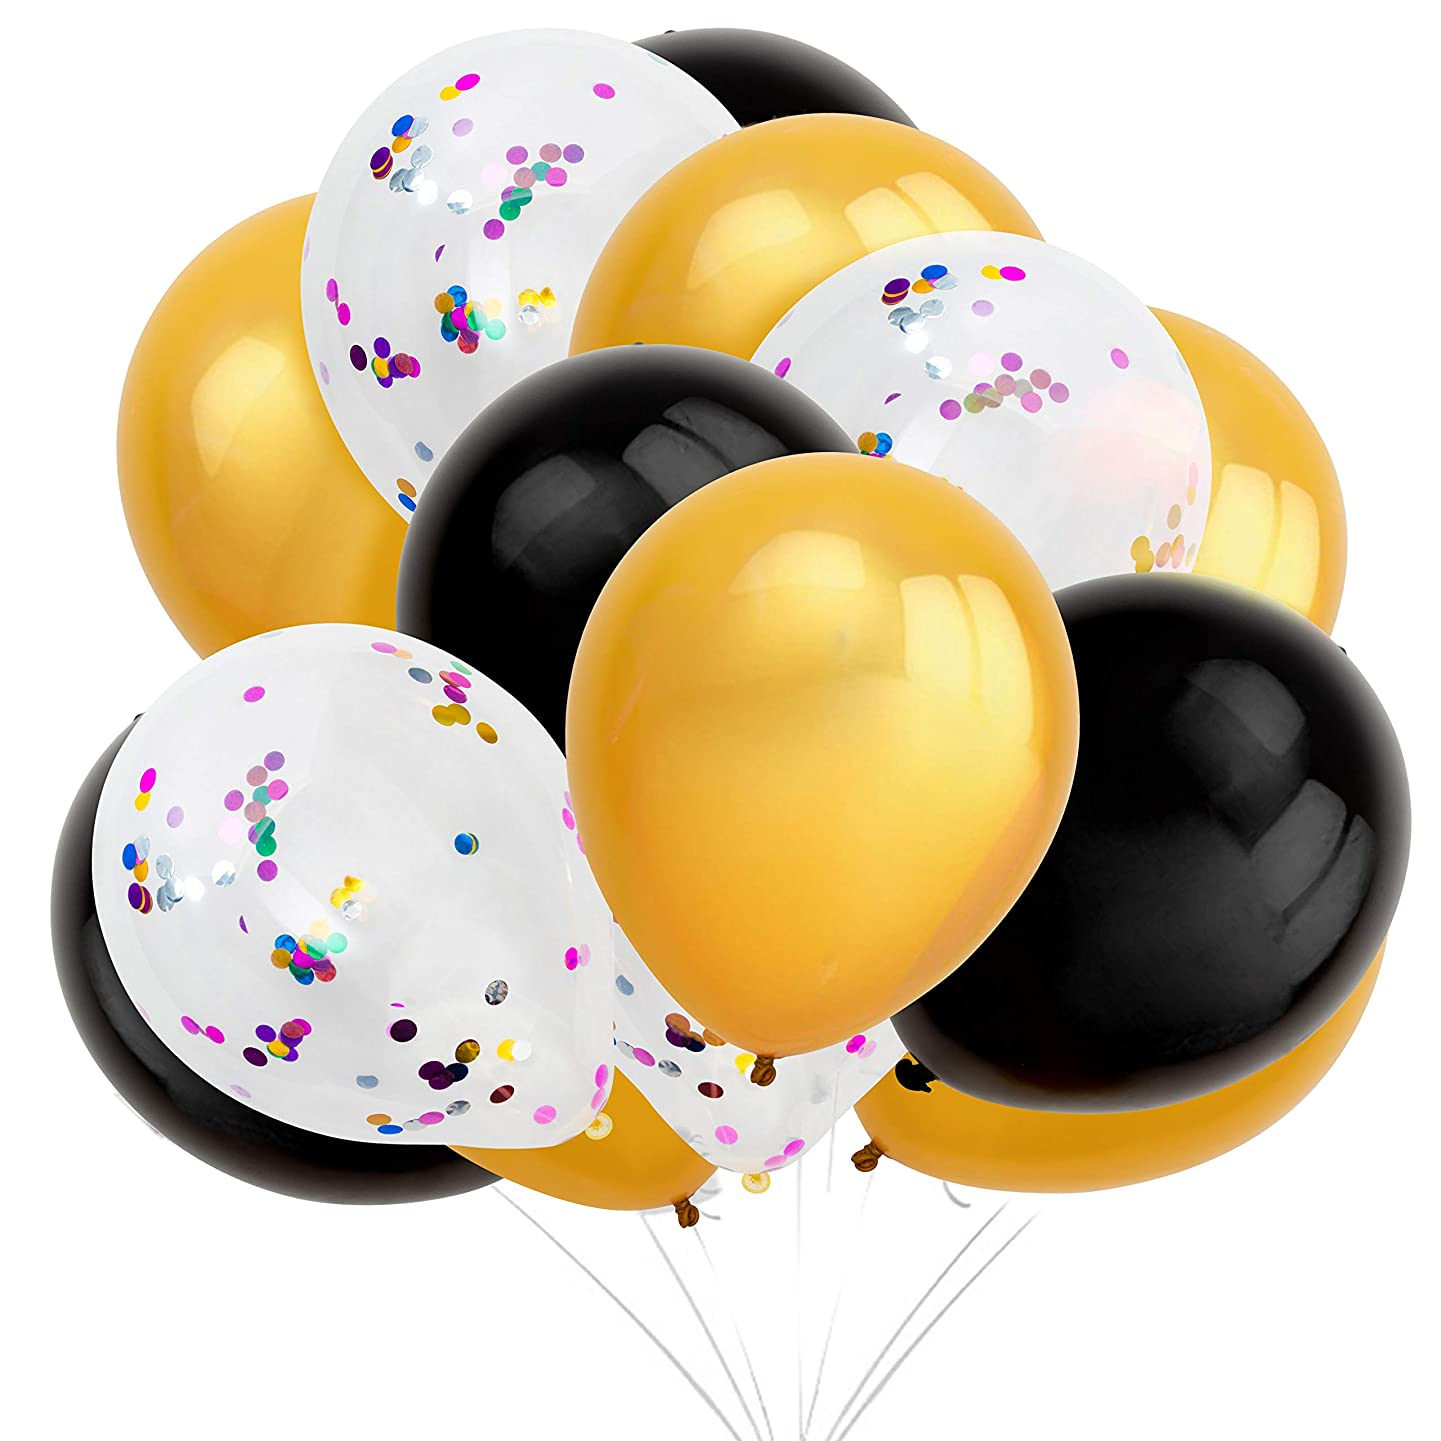 Confetti Balloon Set – 125-Pack Balloons in Black, Gold, Clear/White with Confetti – Includes String and Blowing Straws - Latex Balloons for Birthdays and Graduations, 12-Inch Diameter Balloons